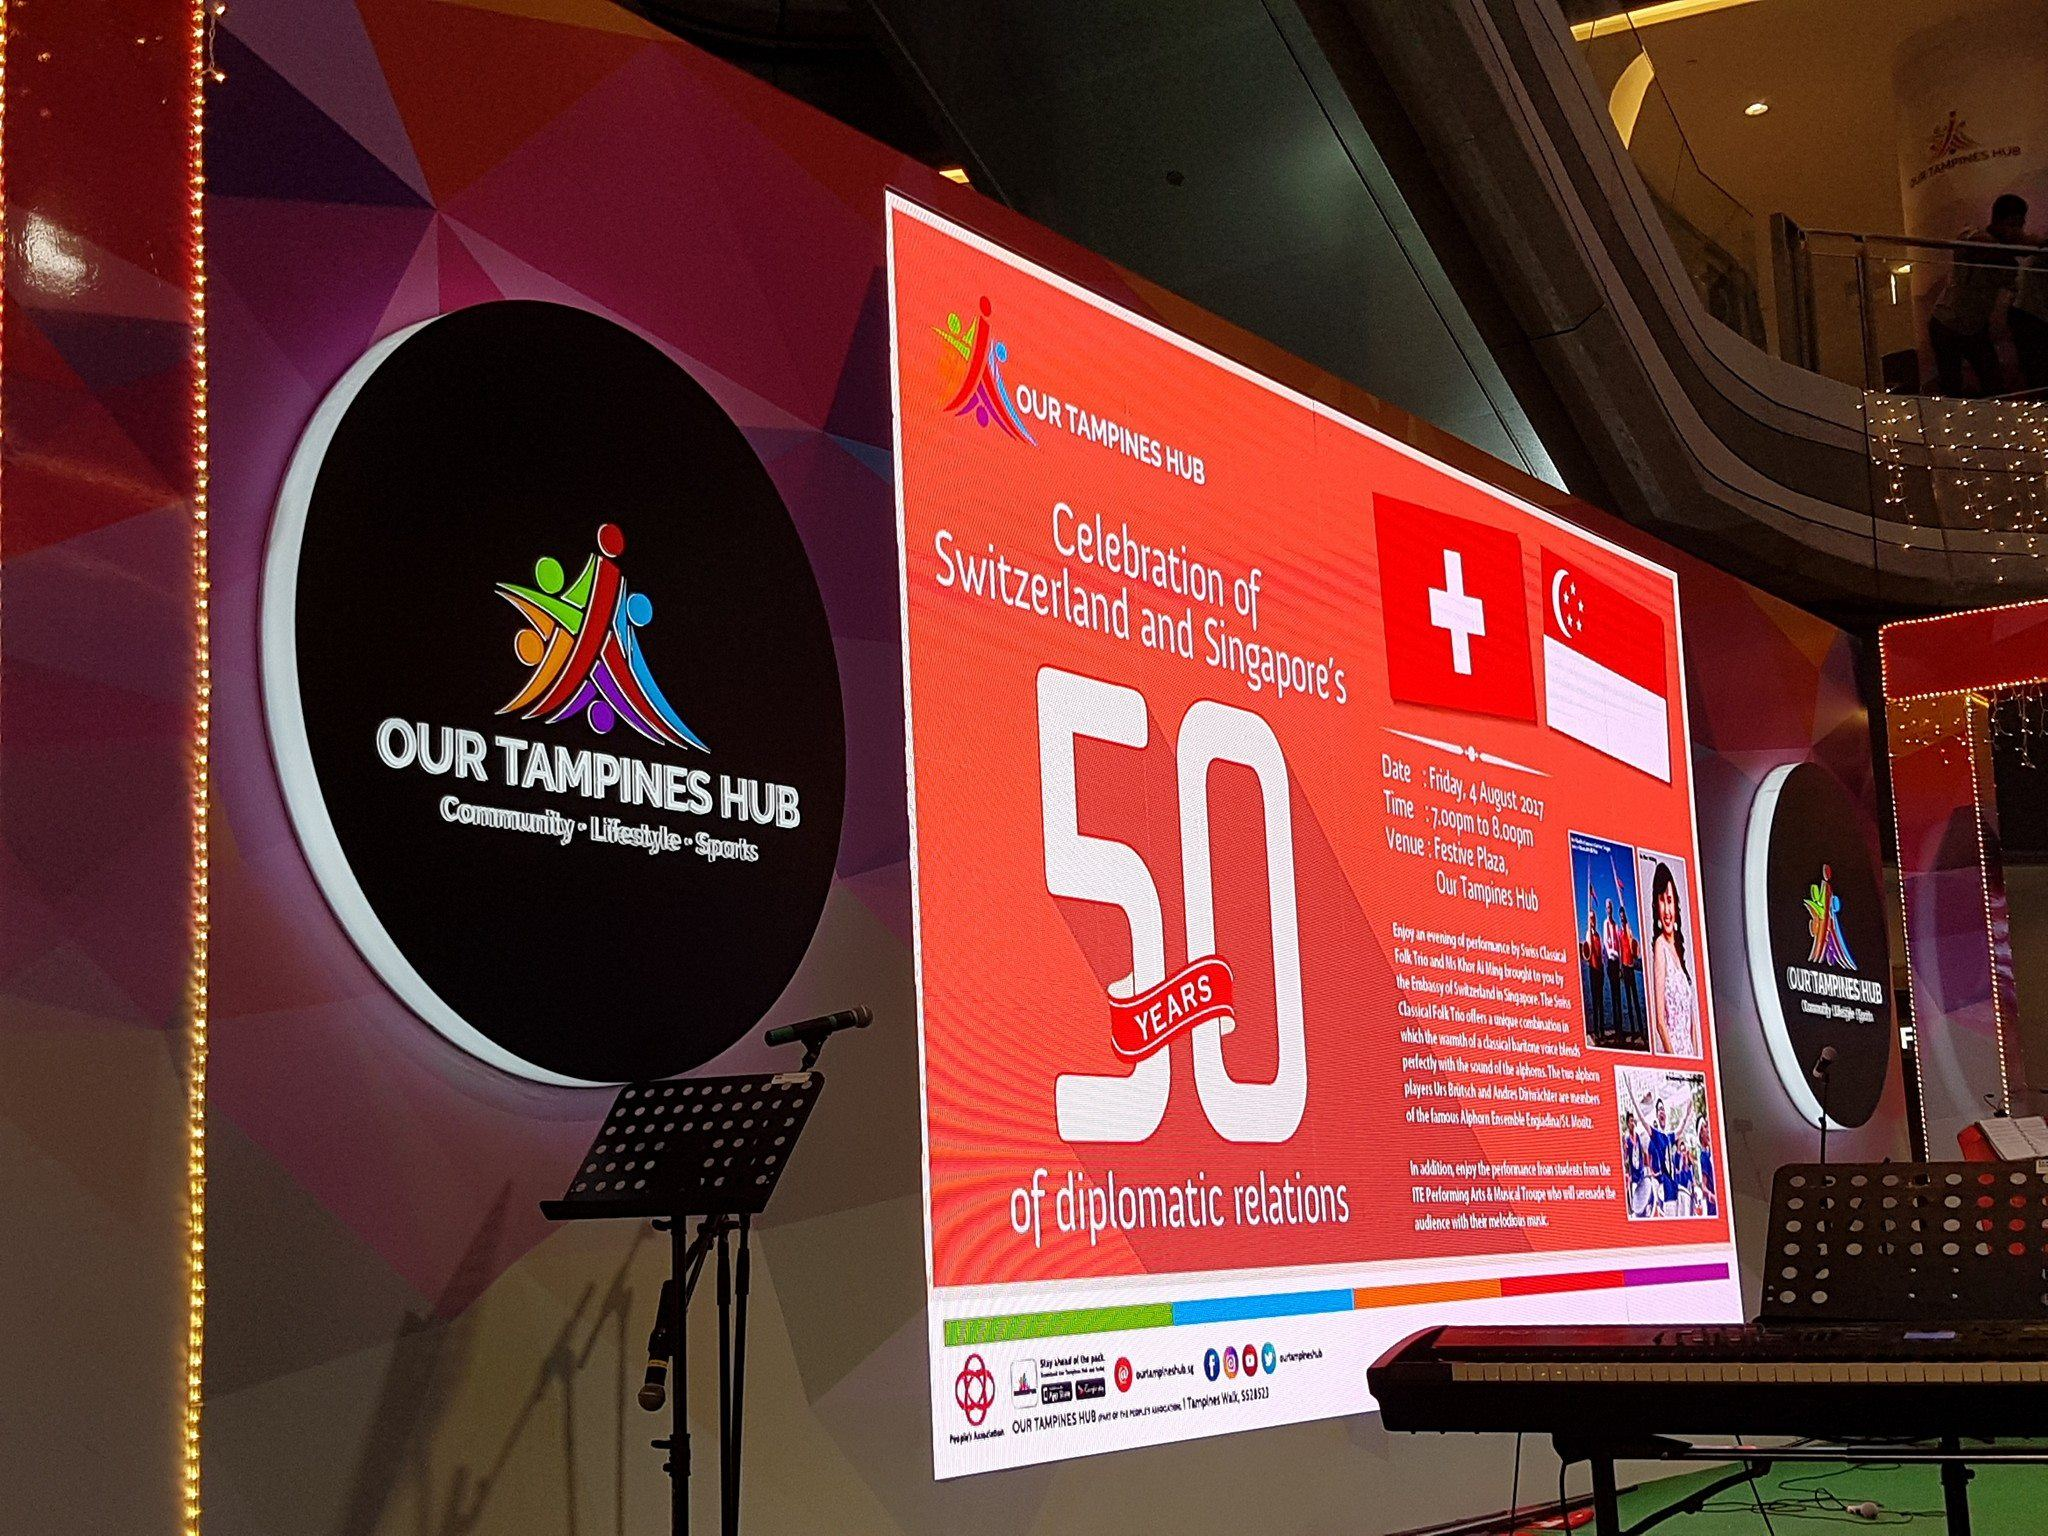 Celebration of Switzerland and Singapore's 50 years of Diplomatic Relations2